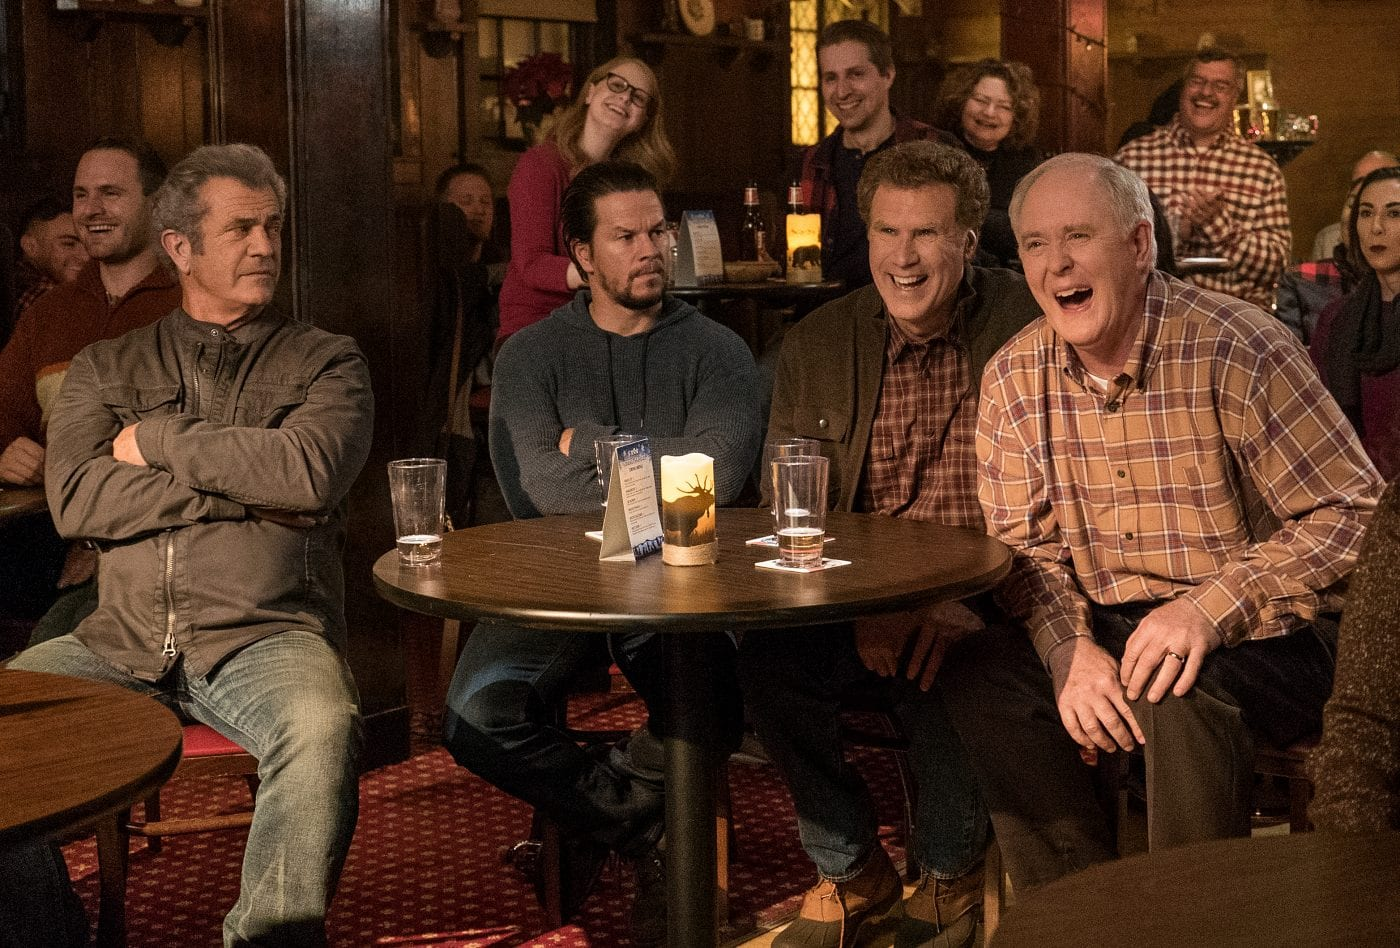 Mel Gibson plays Kurt, Mark Wahlberg plays Dusty, Will Ferrell plays Brad and John Lithgow plays Don in Daddy's Home 2